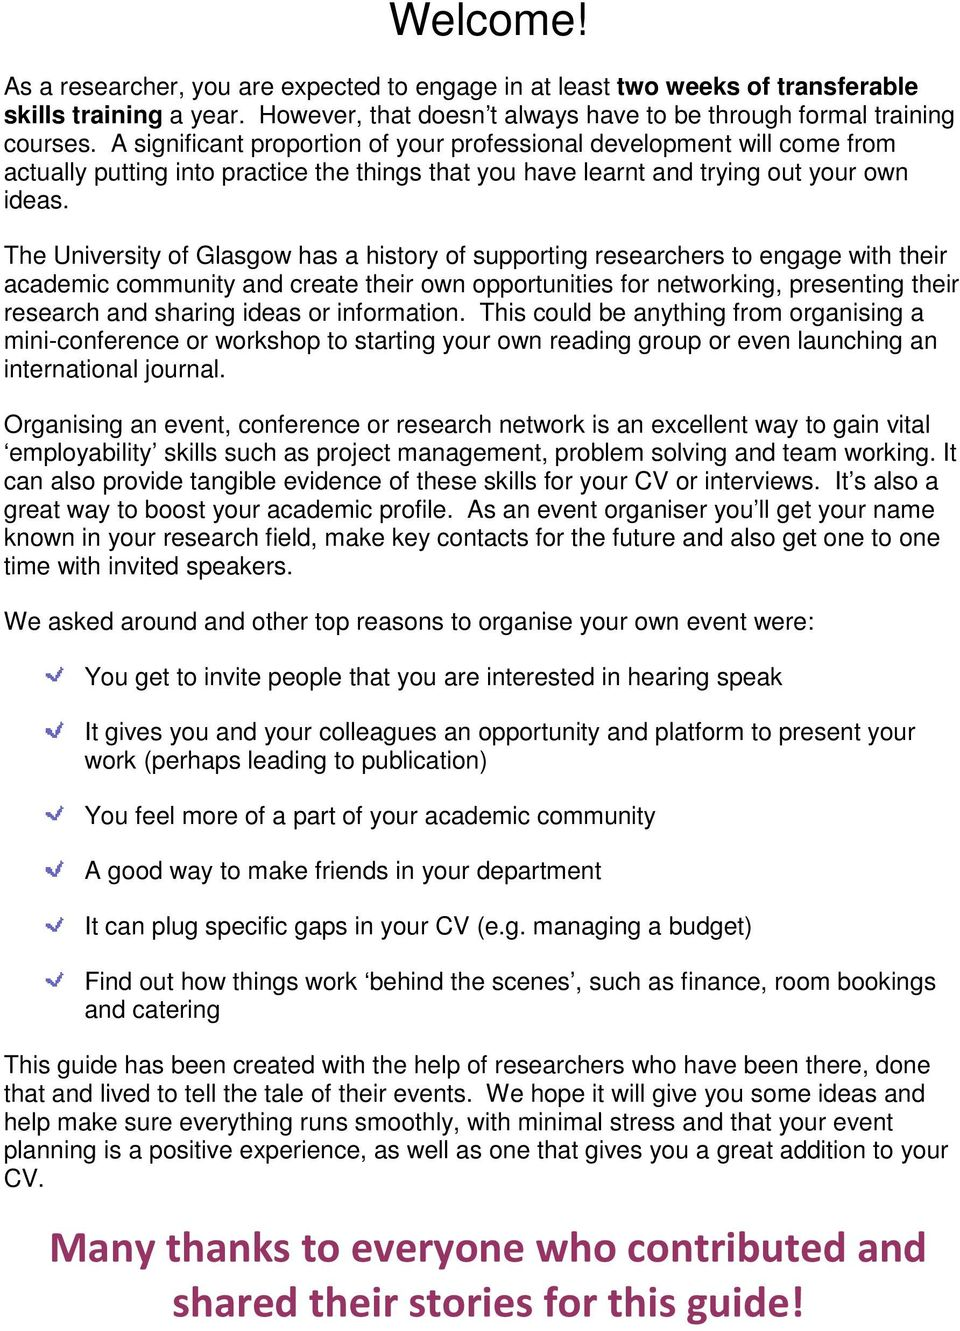 The University of Glasgow has a history of supporting researchers to engage with their academic community and create their own opportunities for networking, presenting their research and sharing